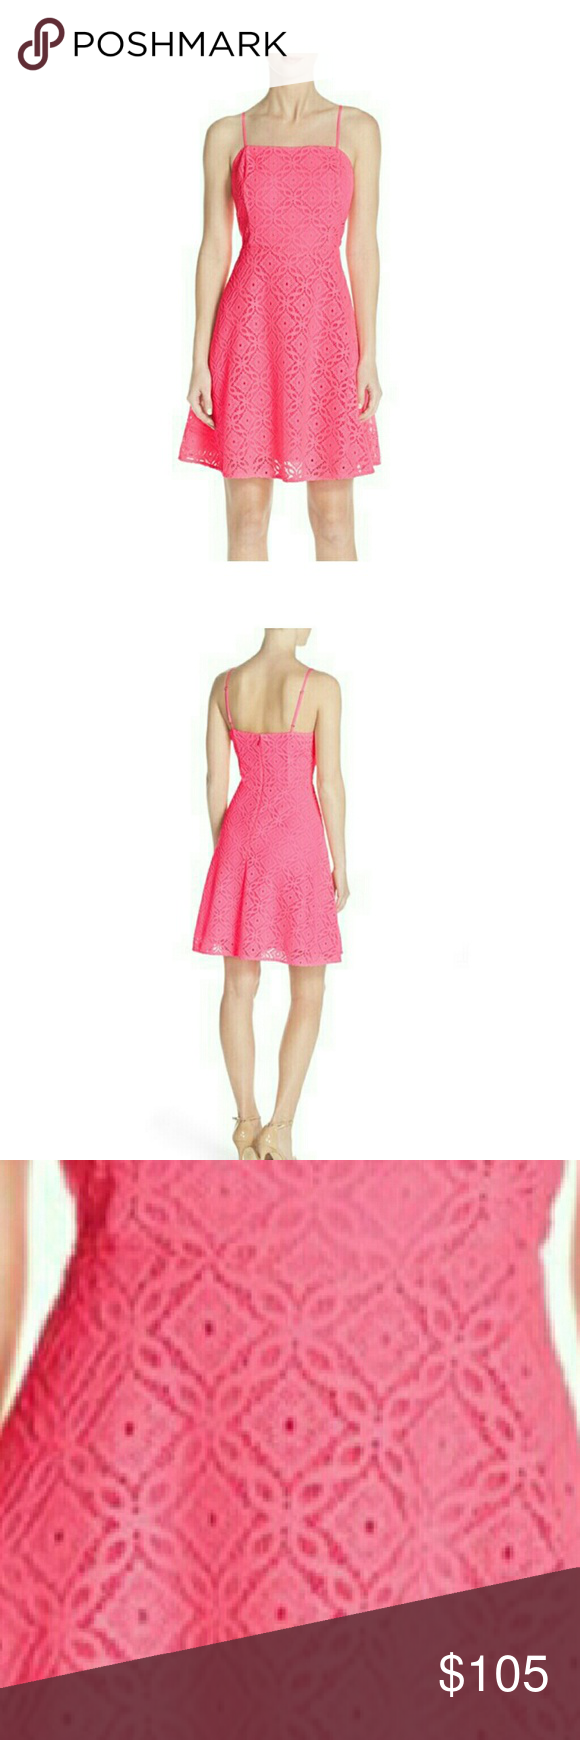 NWT Lilly Pulitzer Jennilee Lace Dress Hot pink lace heightens the ...